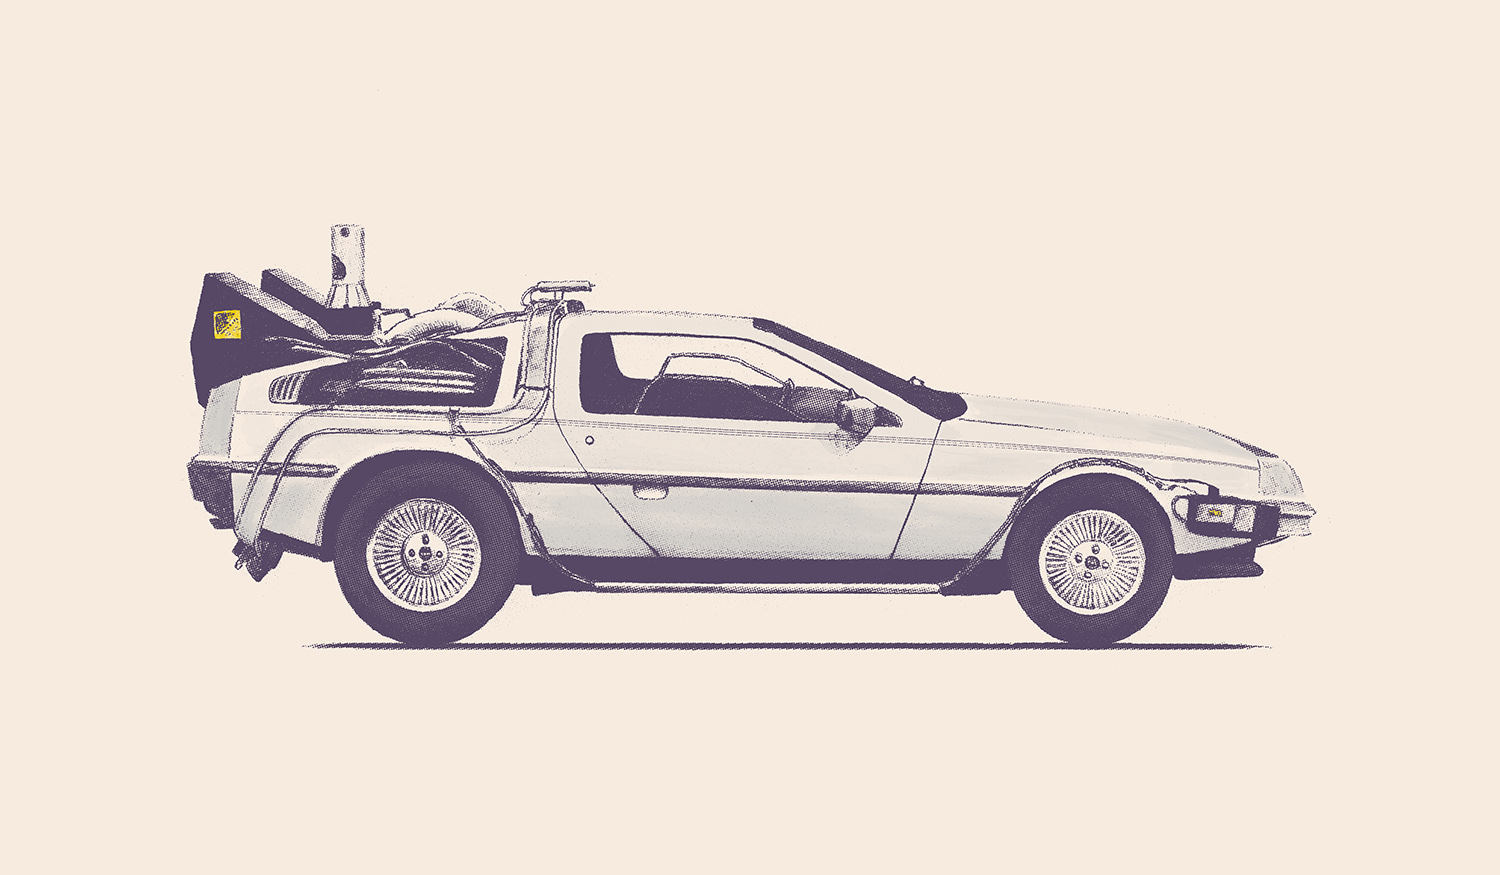 <dive><h1>Delorean</h1>Famous Cars</dive>